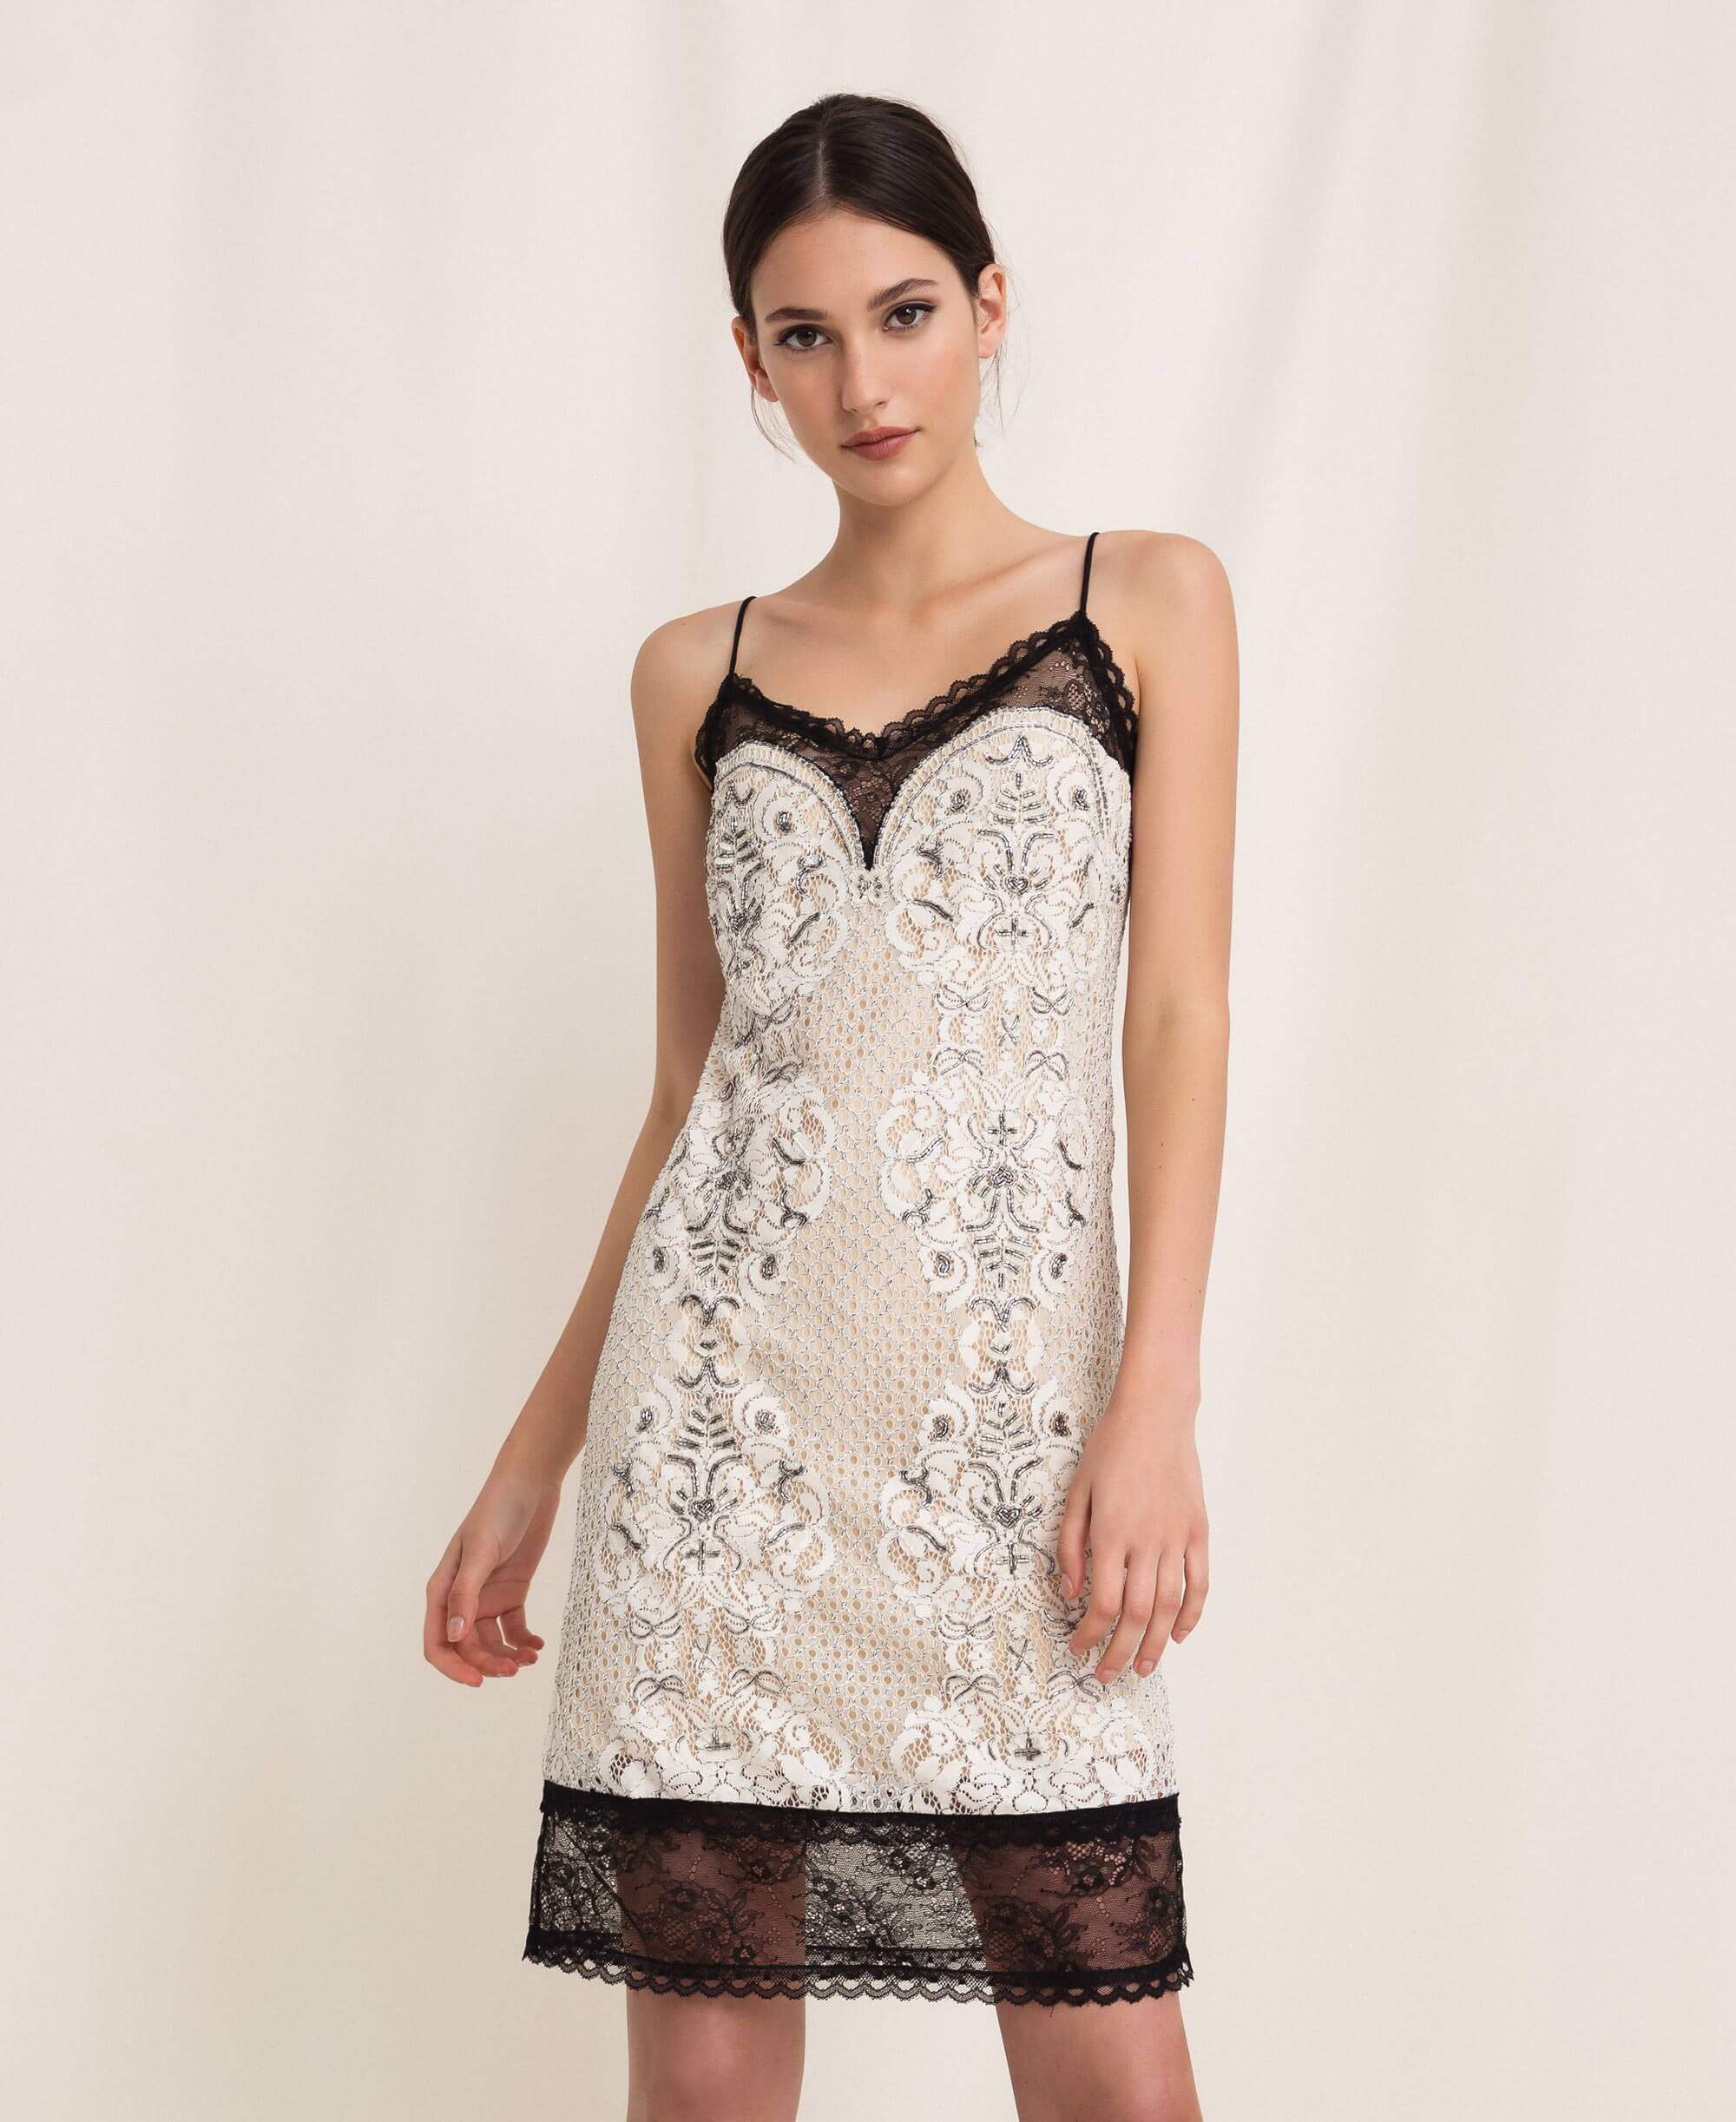 TWINSET Lace slip dress with embroidery - Beige and Black